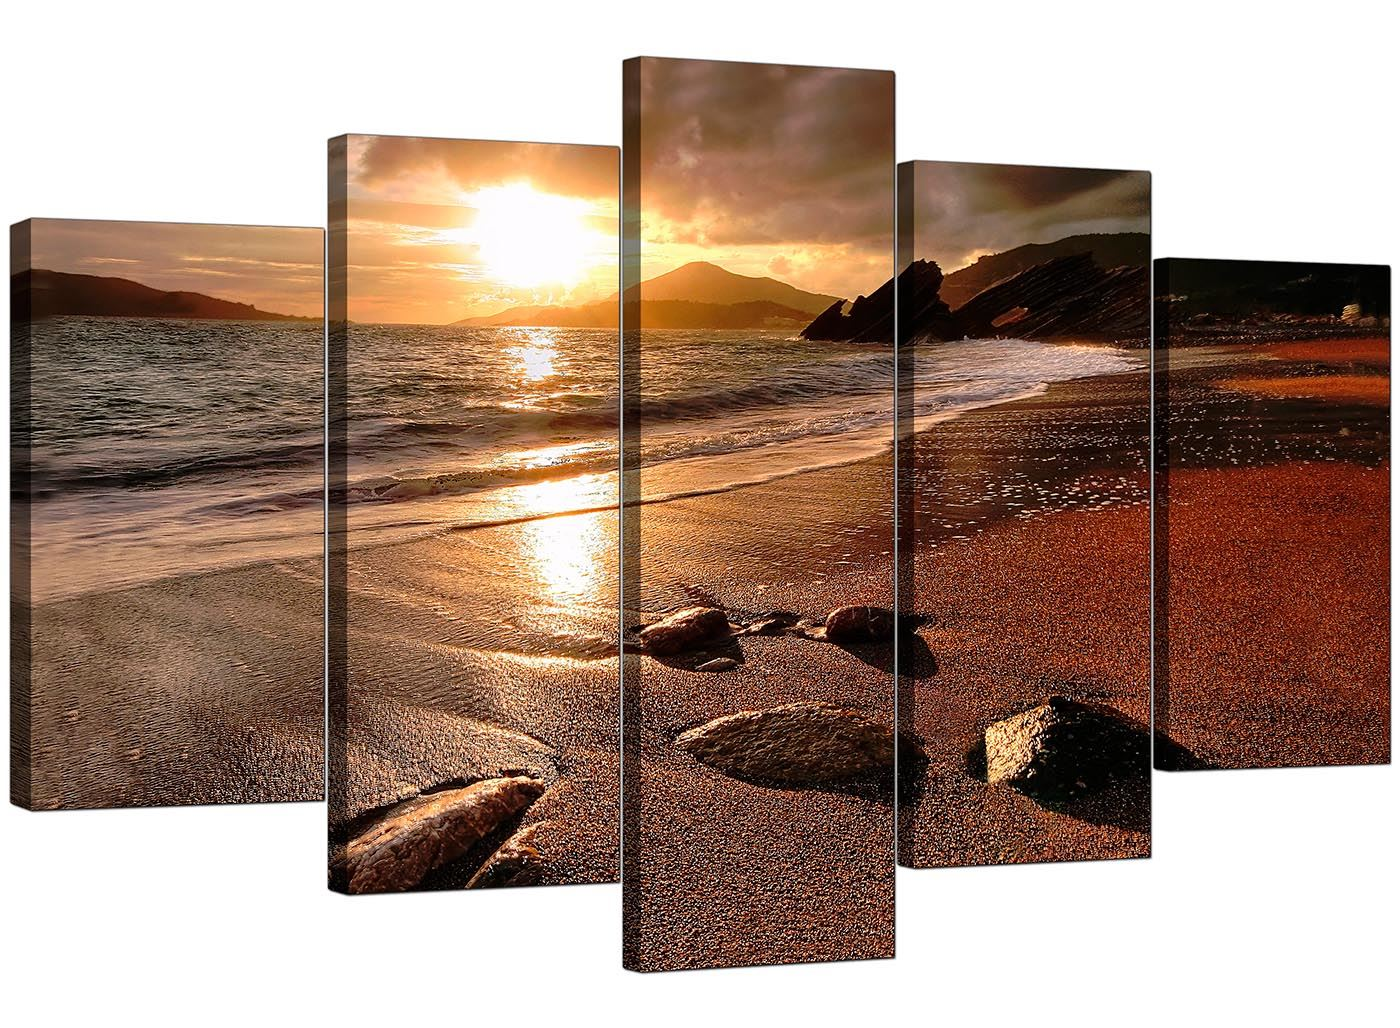 Sunset Beach Love Art Picture Sepia Cream Landscape Canvas Wall Print 112cm